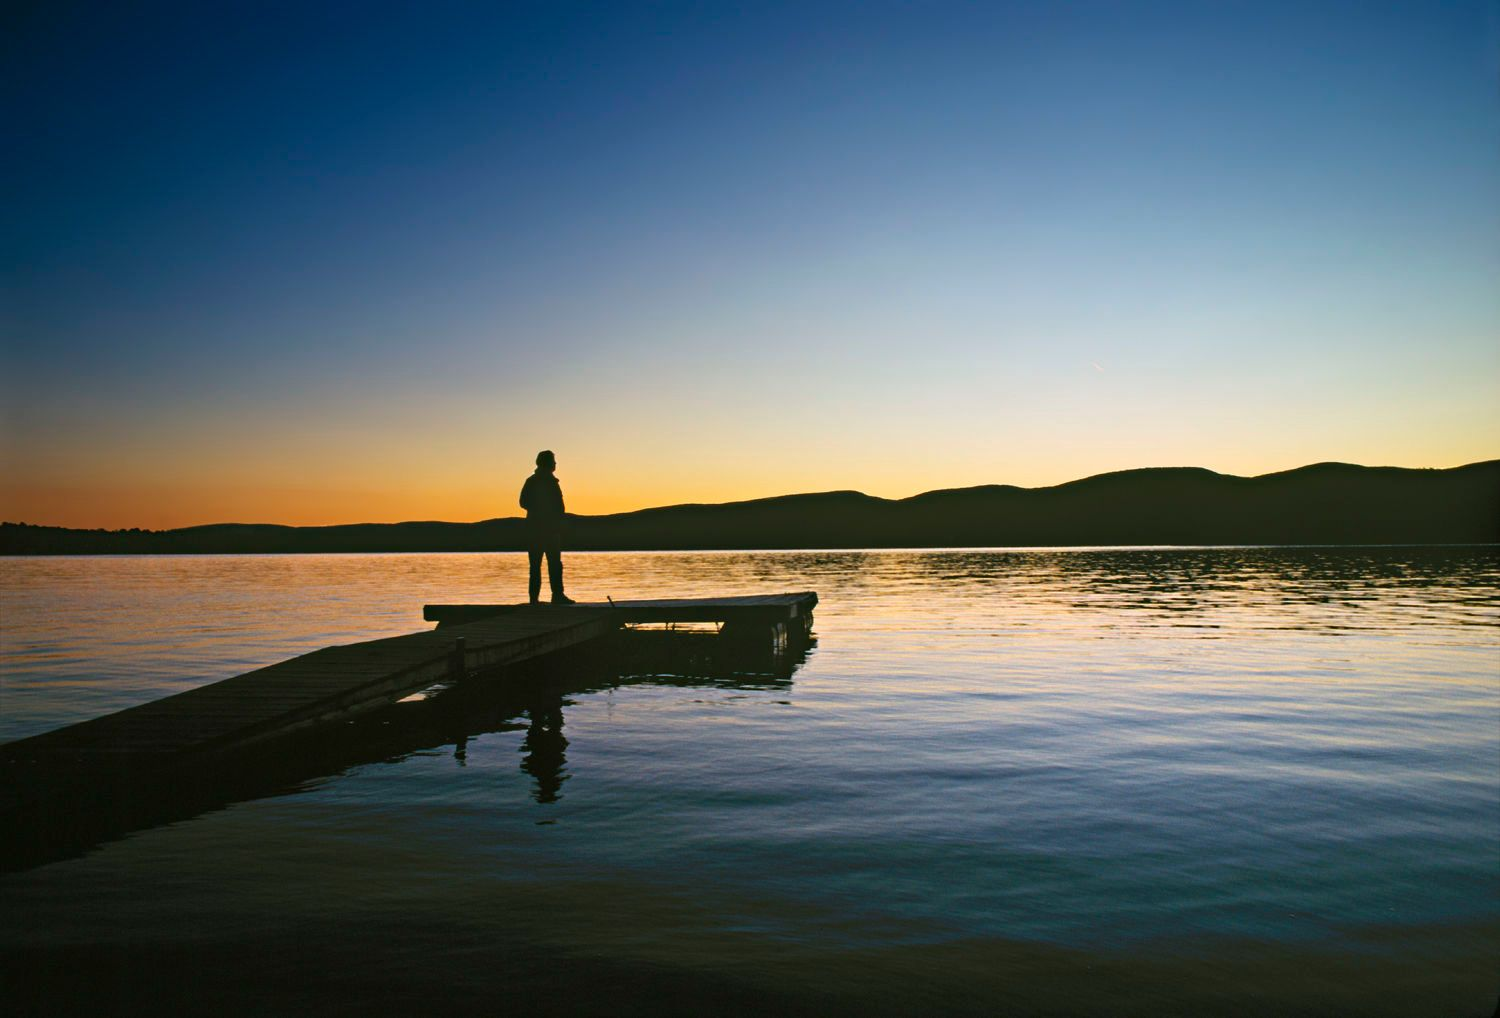 Person standing on dock at dusk